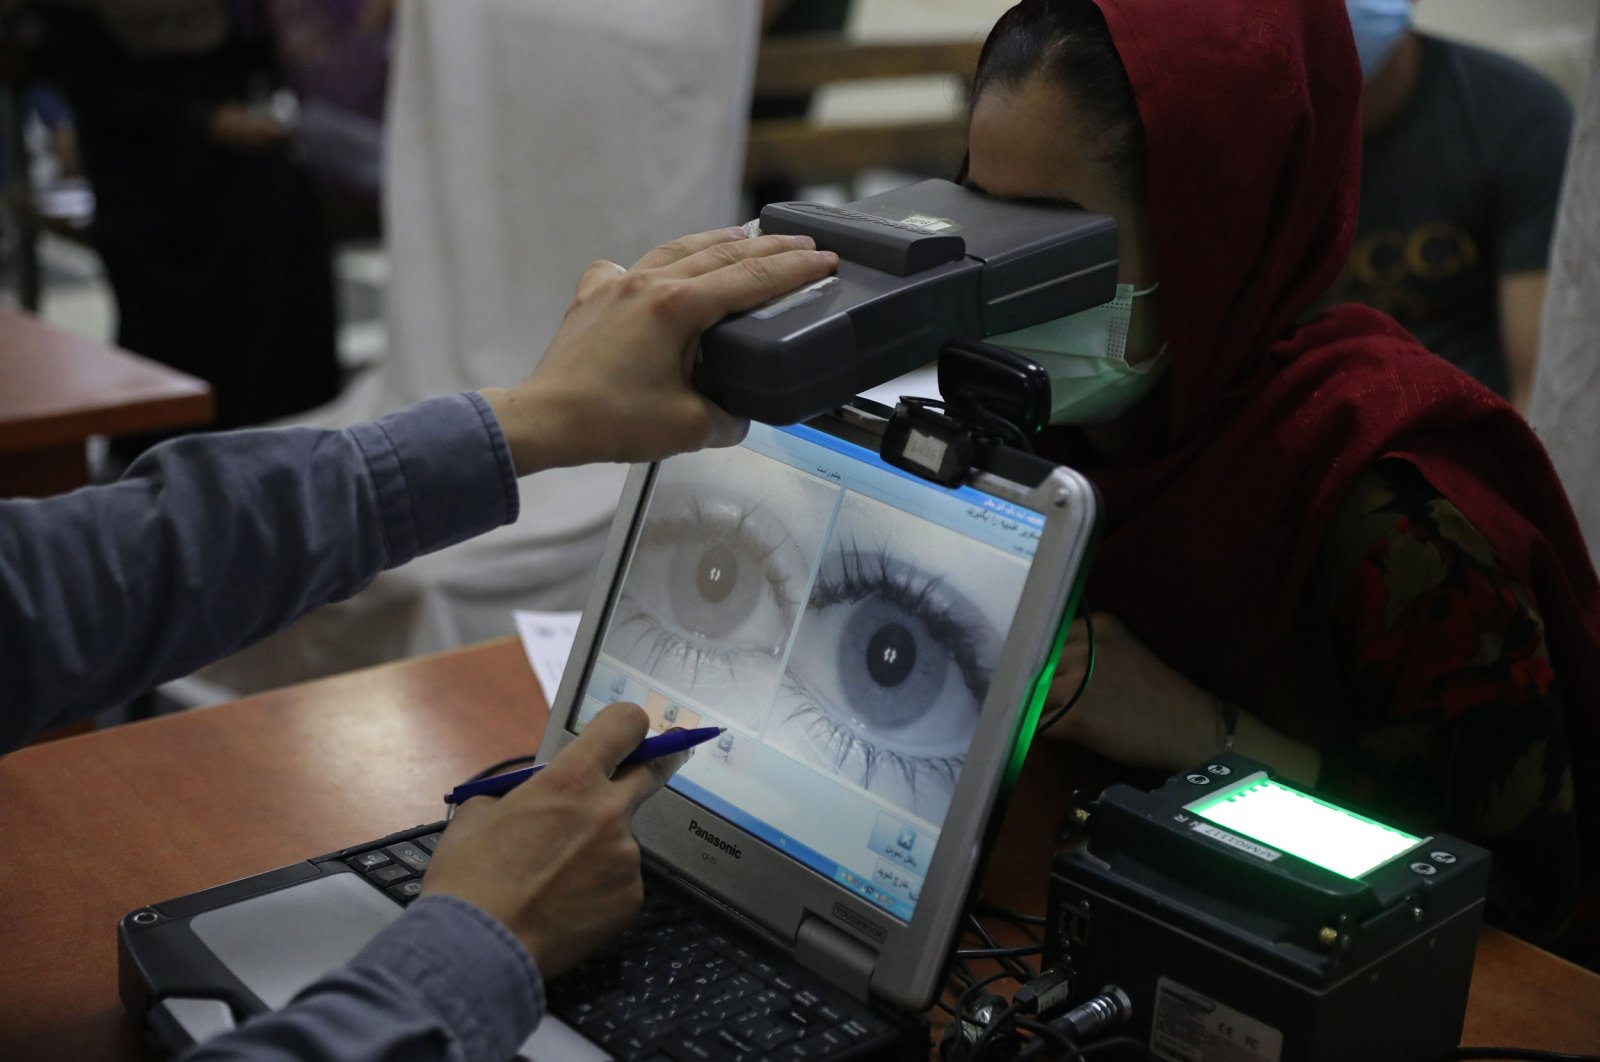 An employee scans the eyes of a woman for biometric data needed to apply for a passport, at the passport office in Kabul, Afghanistan, June 30, 2021. (AP Photo)